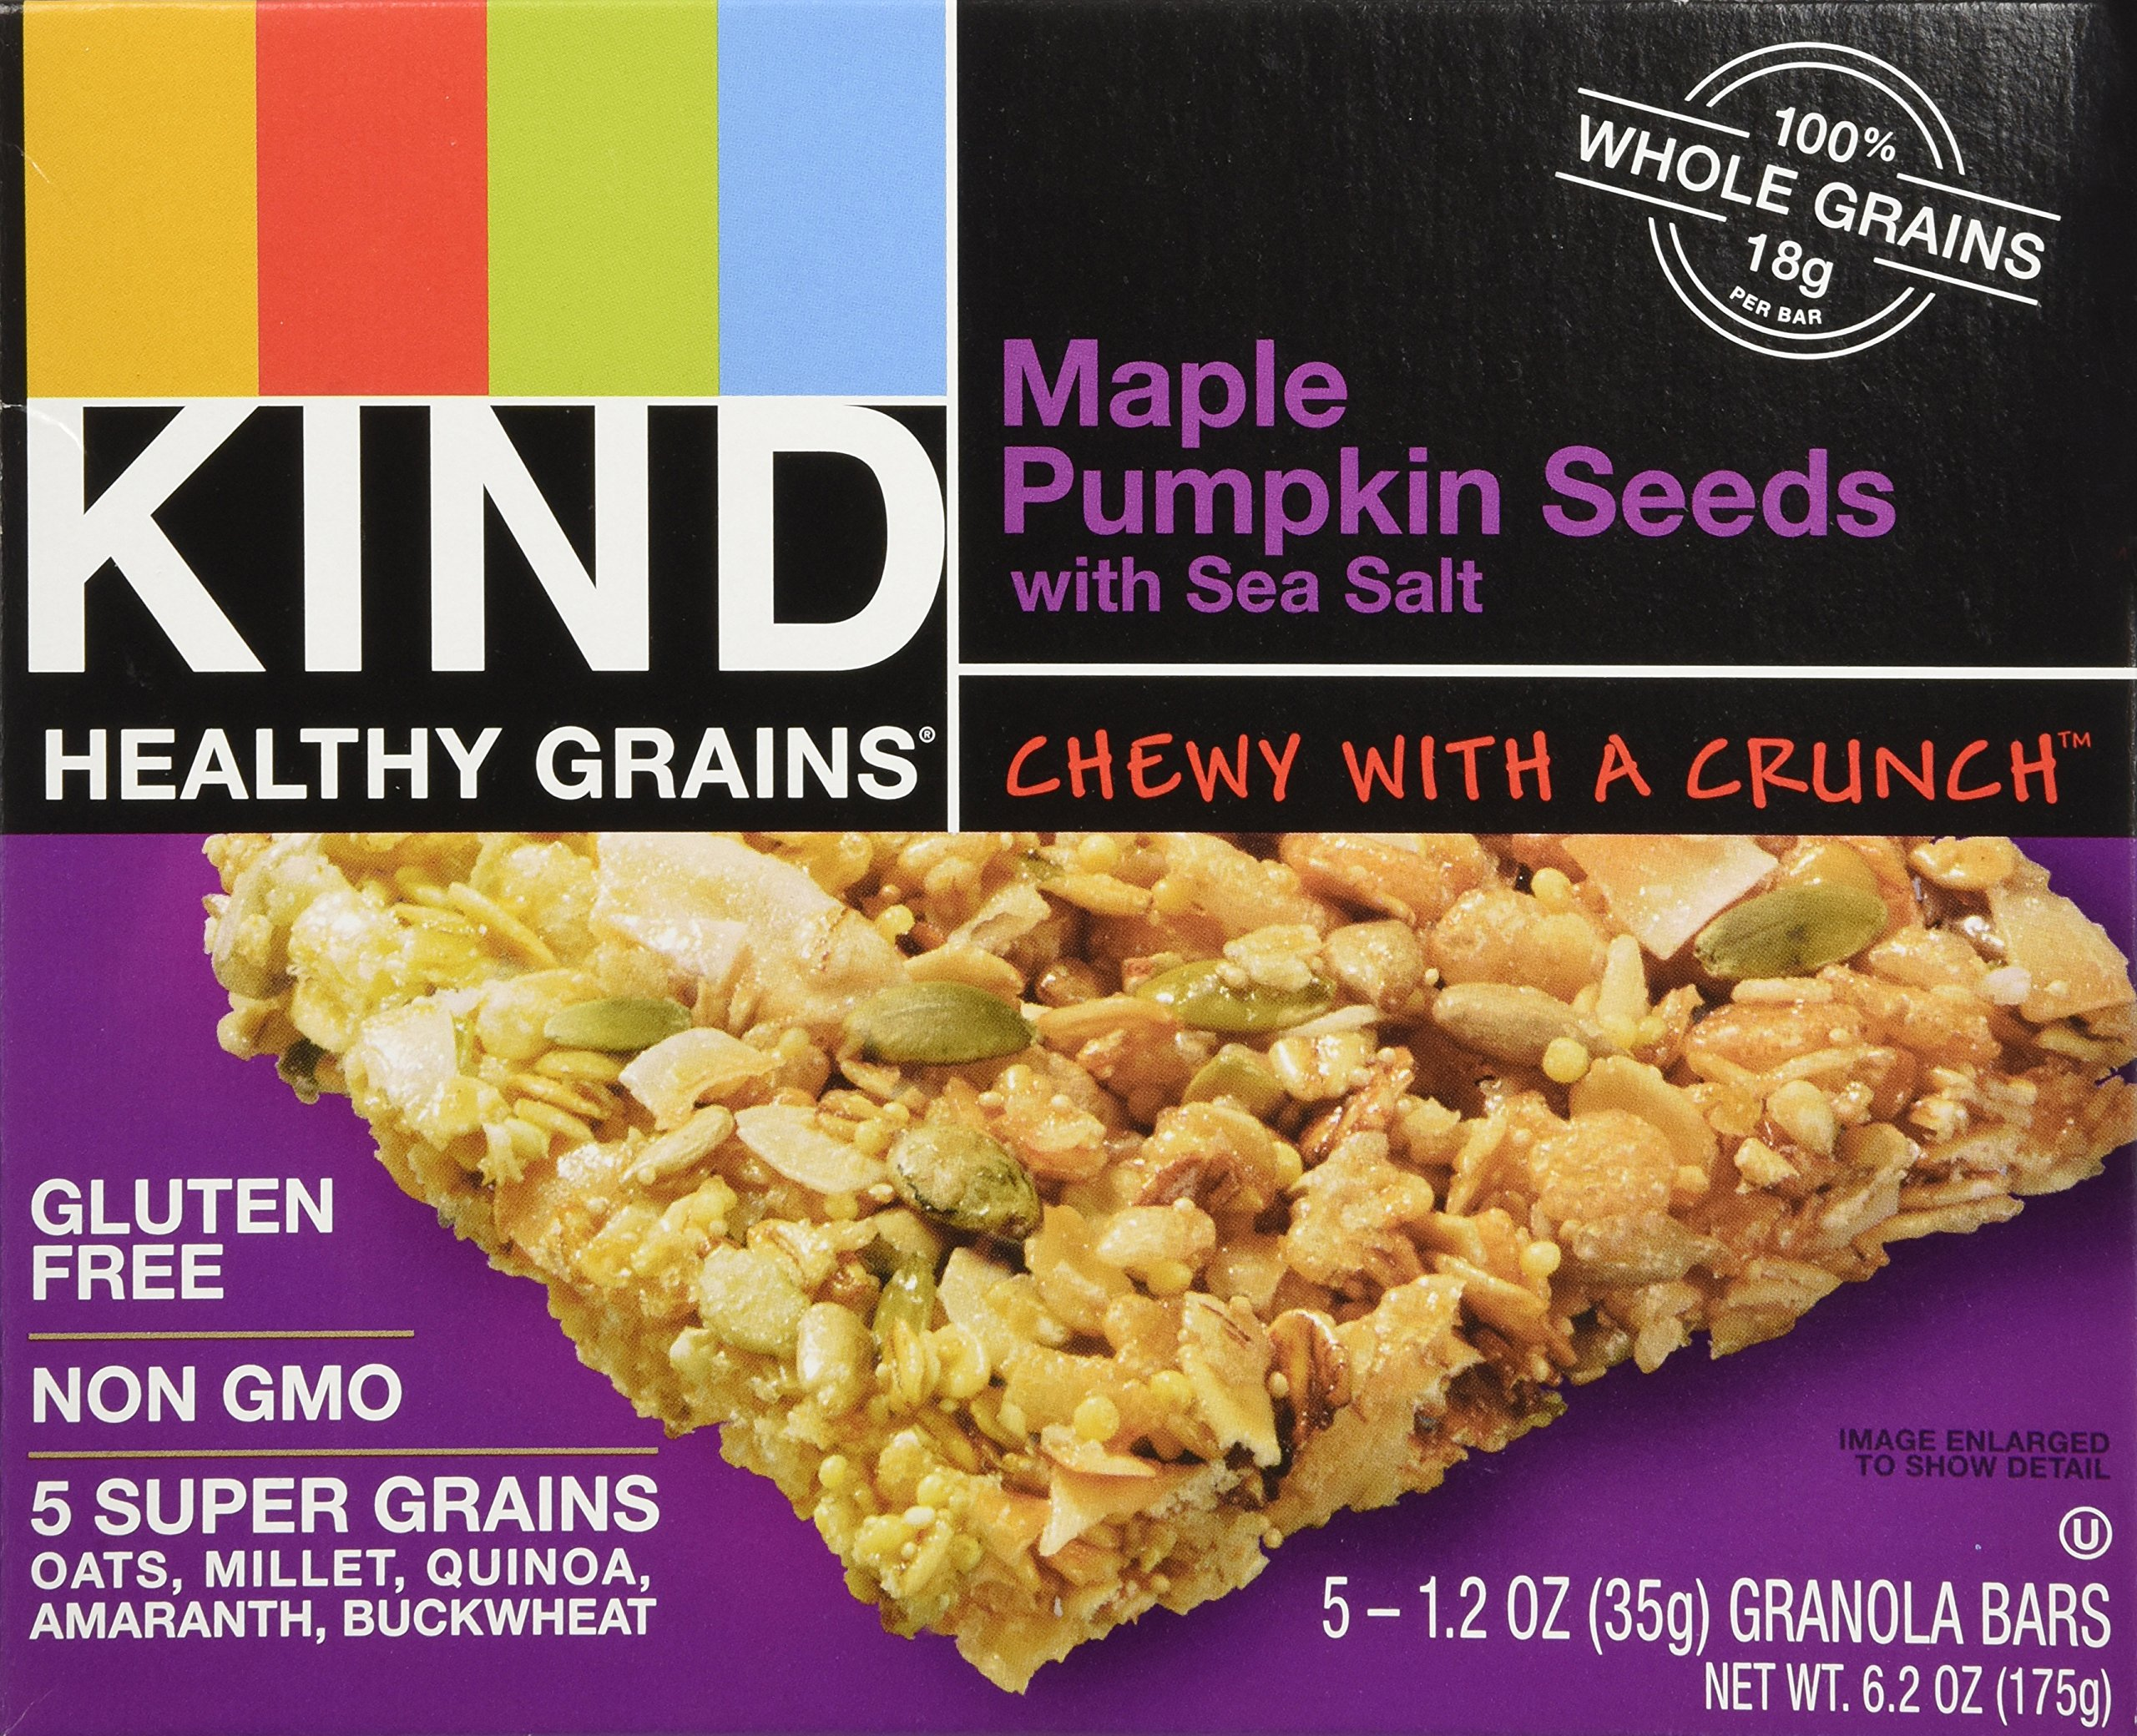 KIND, Healthy Grains Granola Bars, Maple Pumpkin Seed with Sea Salt, 5 count box (Pack of 3) by KIND